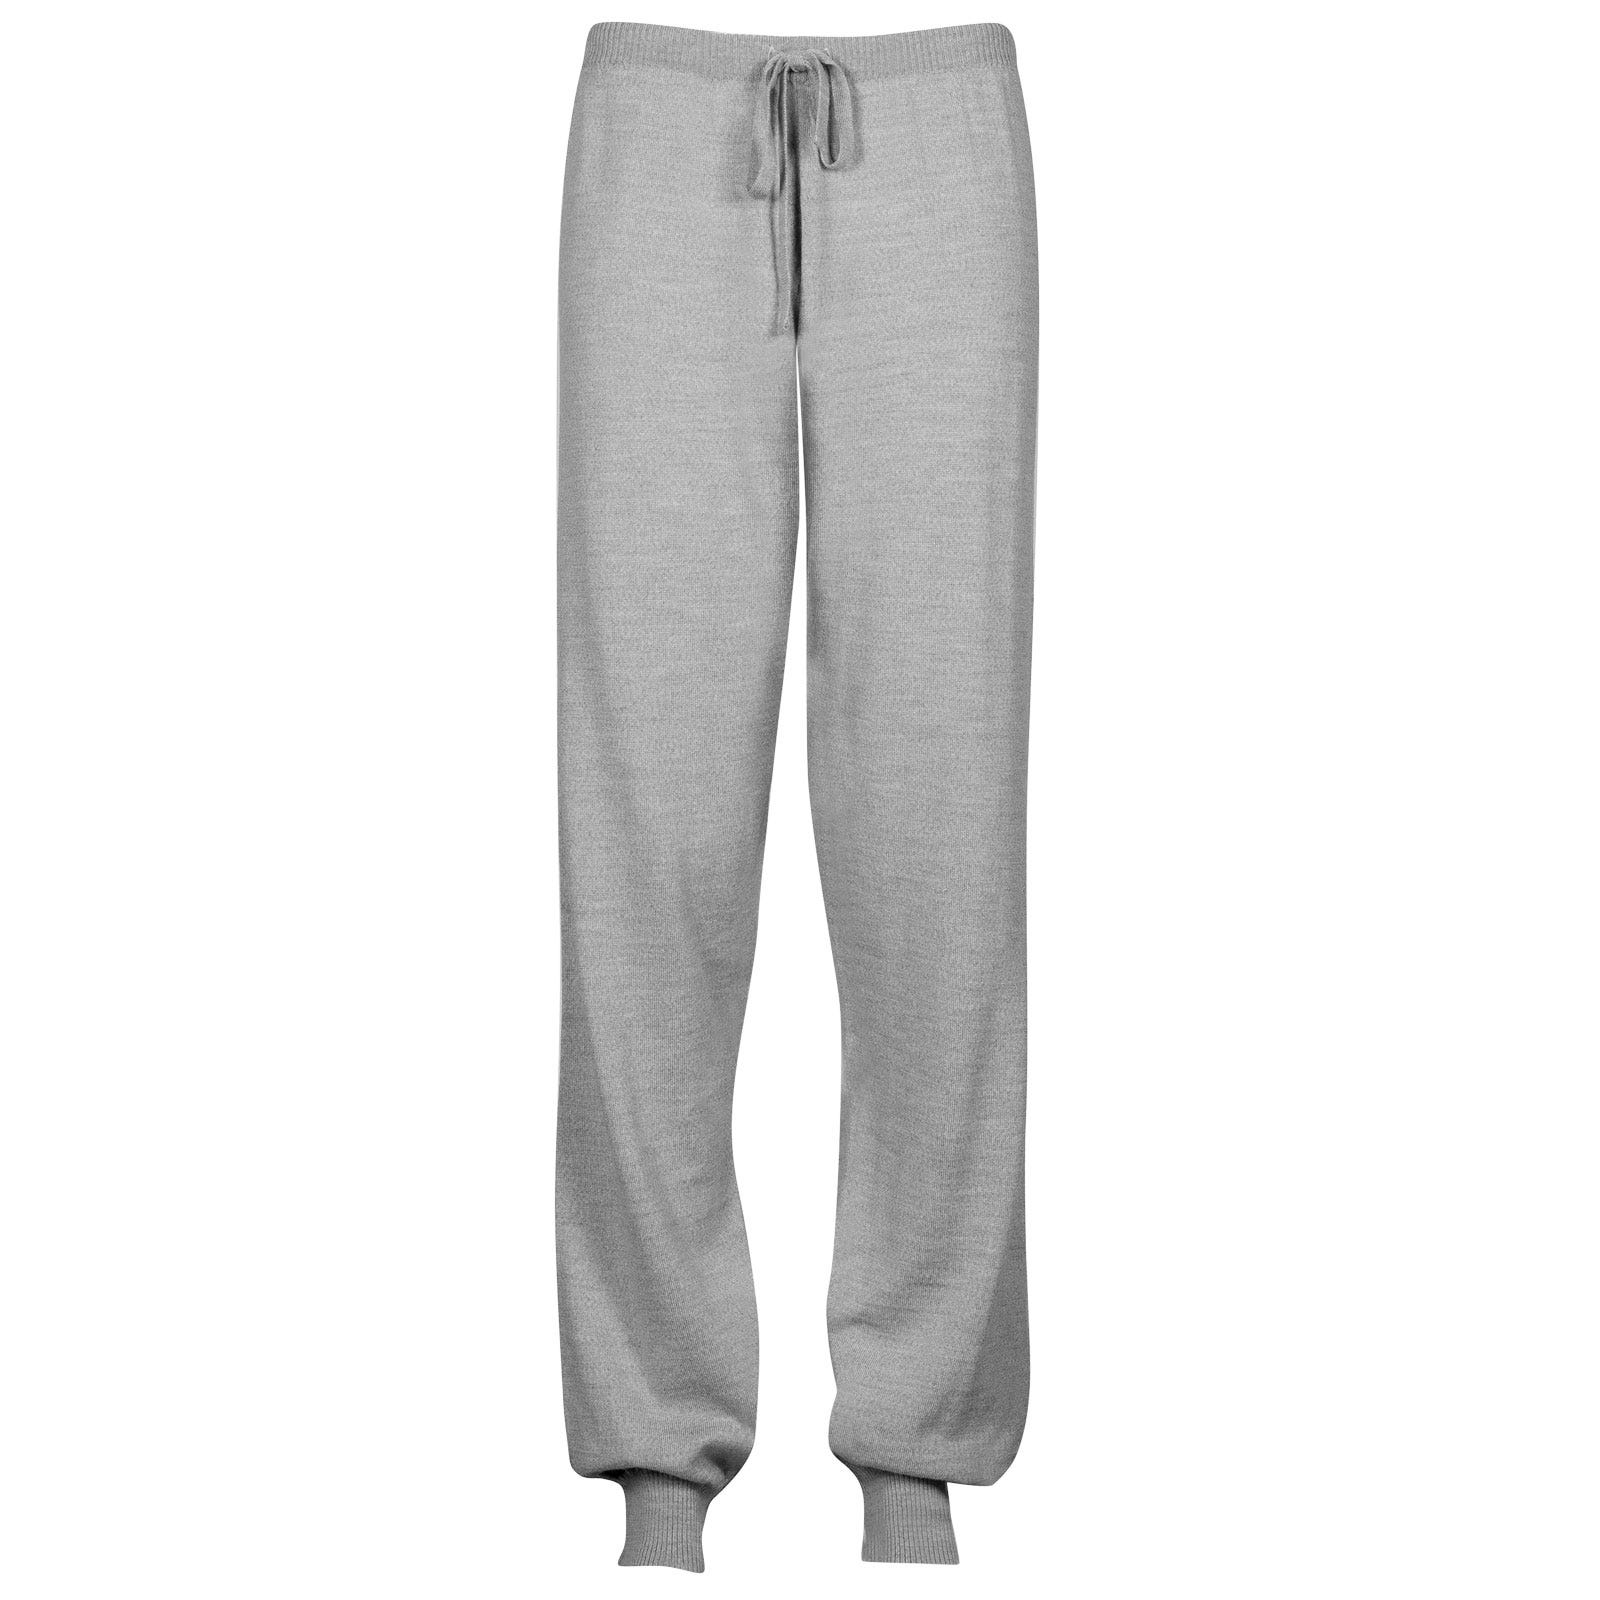 John Smedley Lock Merino Wool Trouser in Bardot Grey-XXL